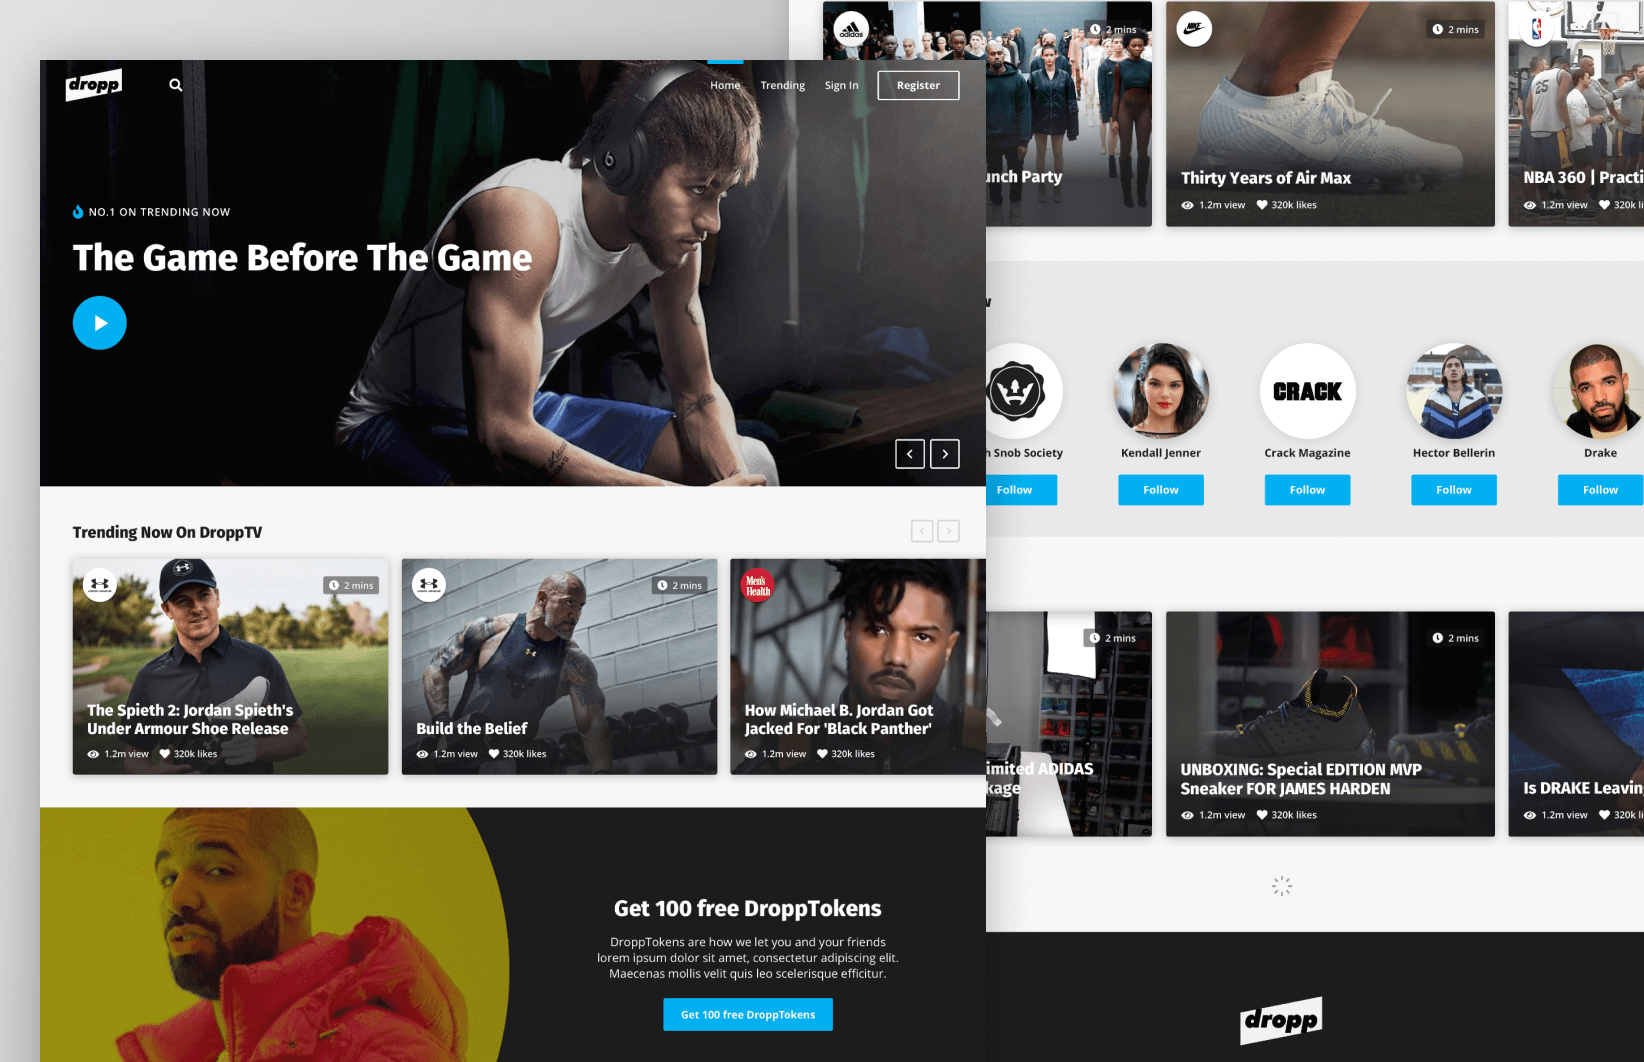 DroppTV - Website interface designs